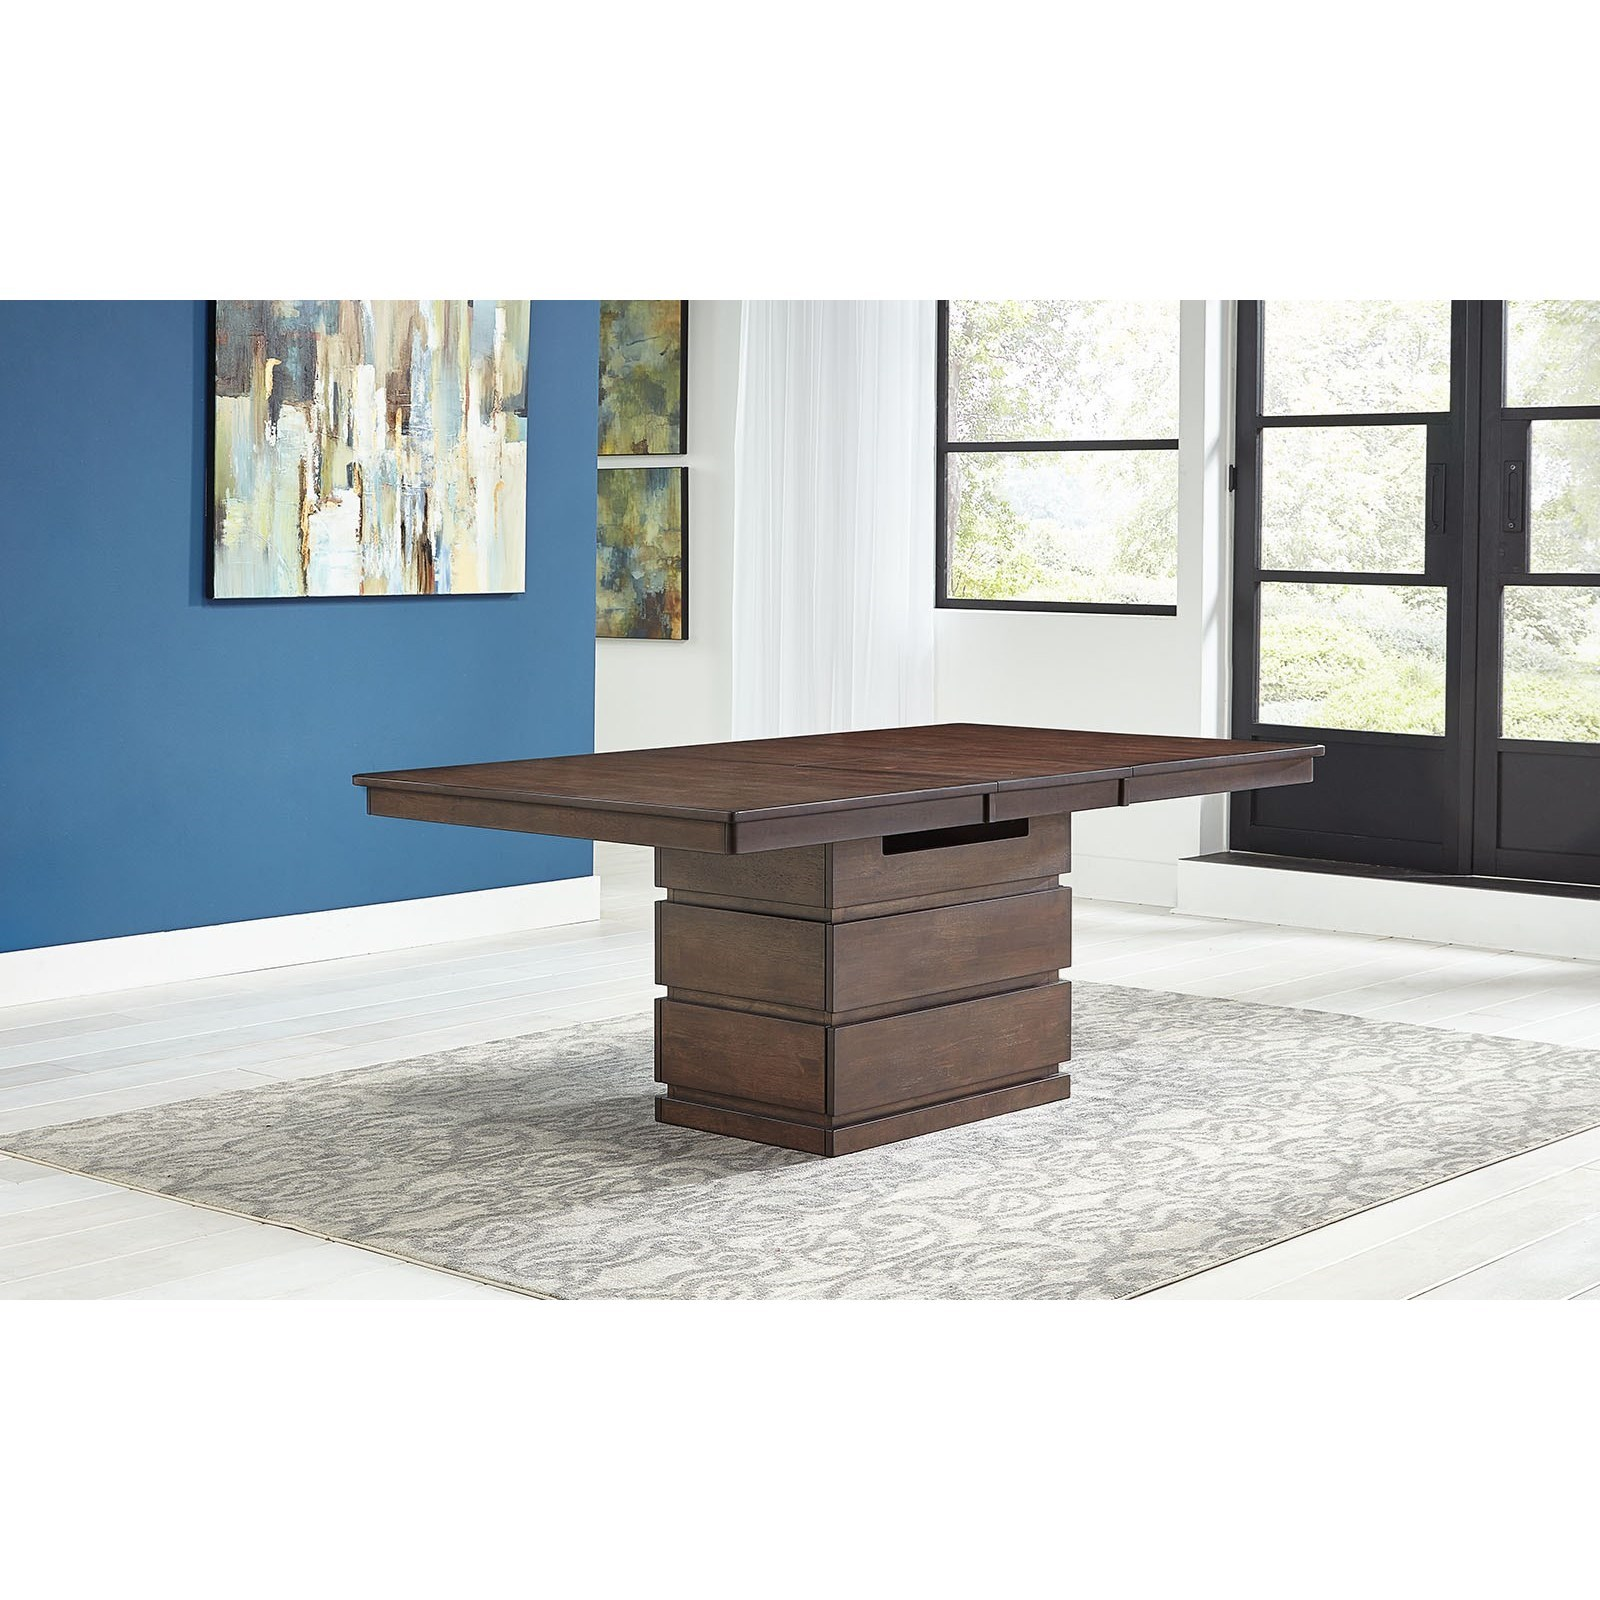 Chesney Convertible Height Storage Table  by A-A at Walker's Furniture